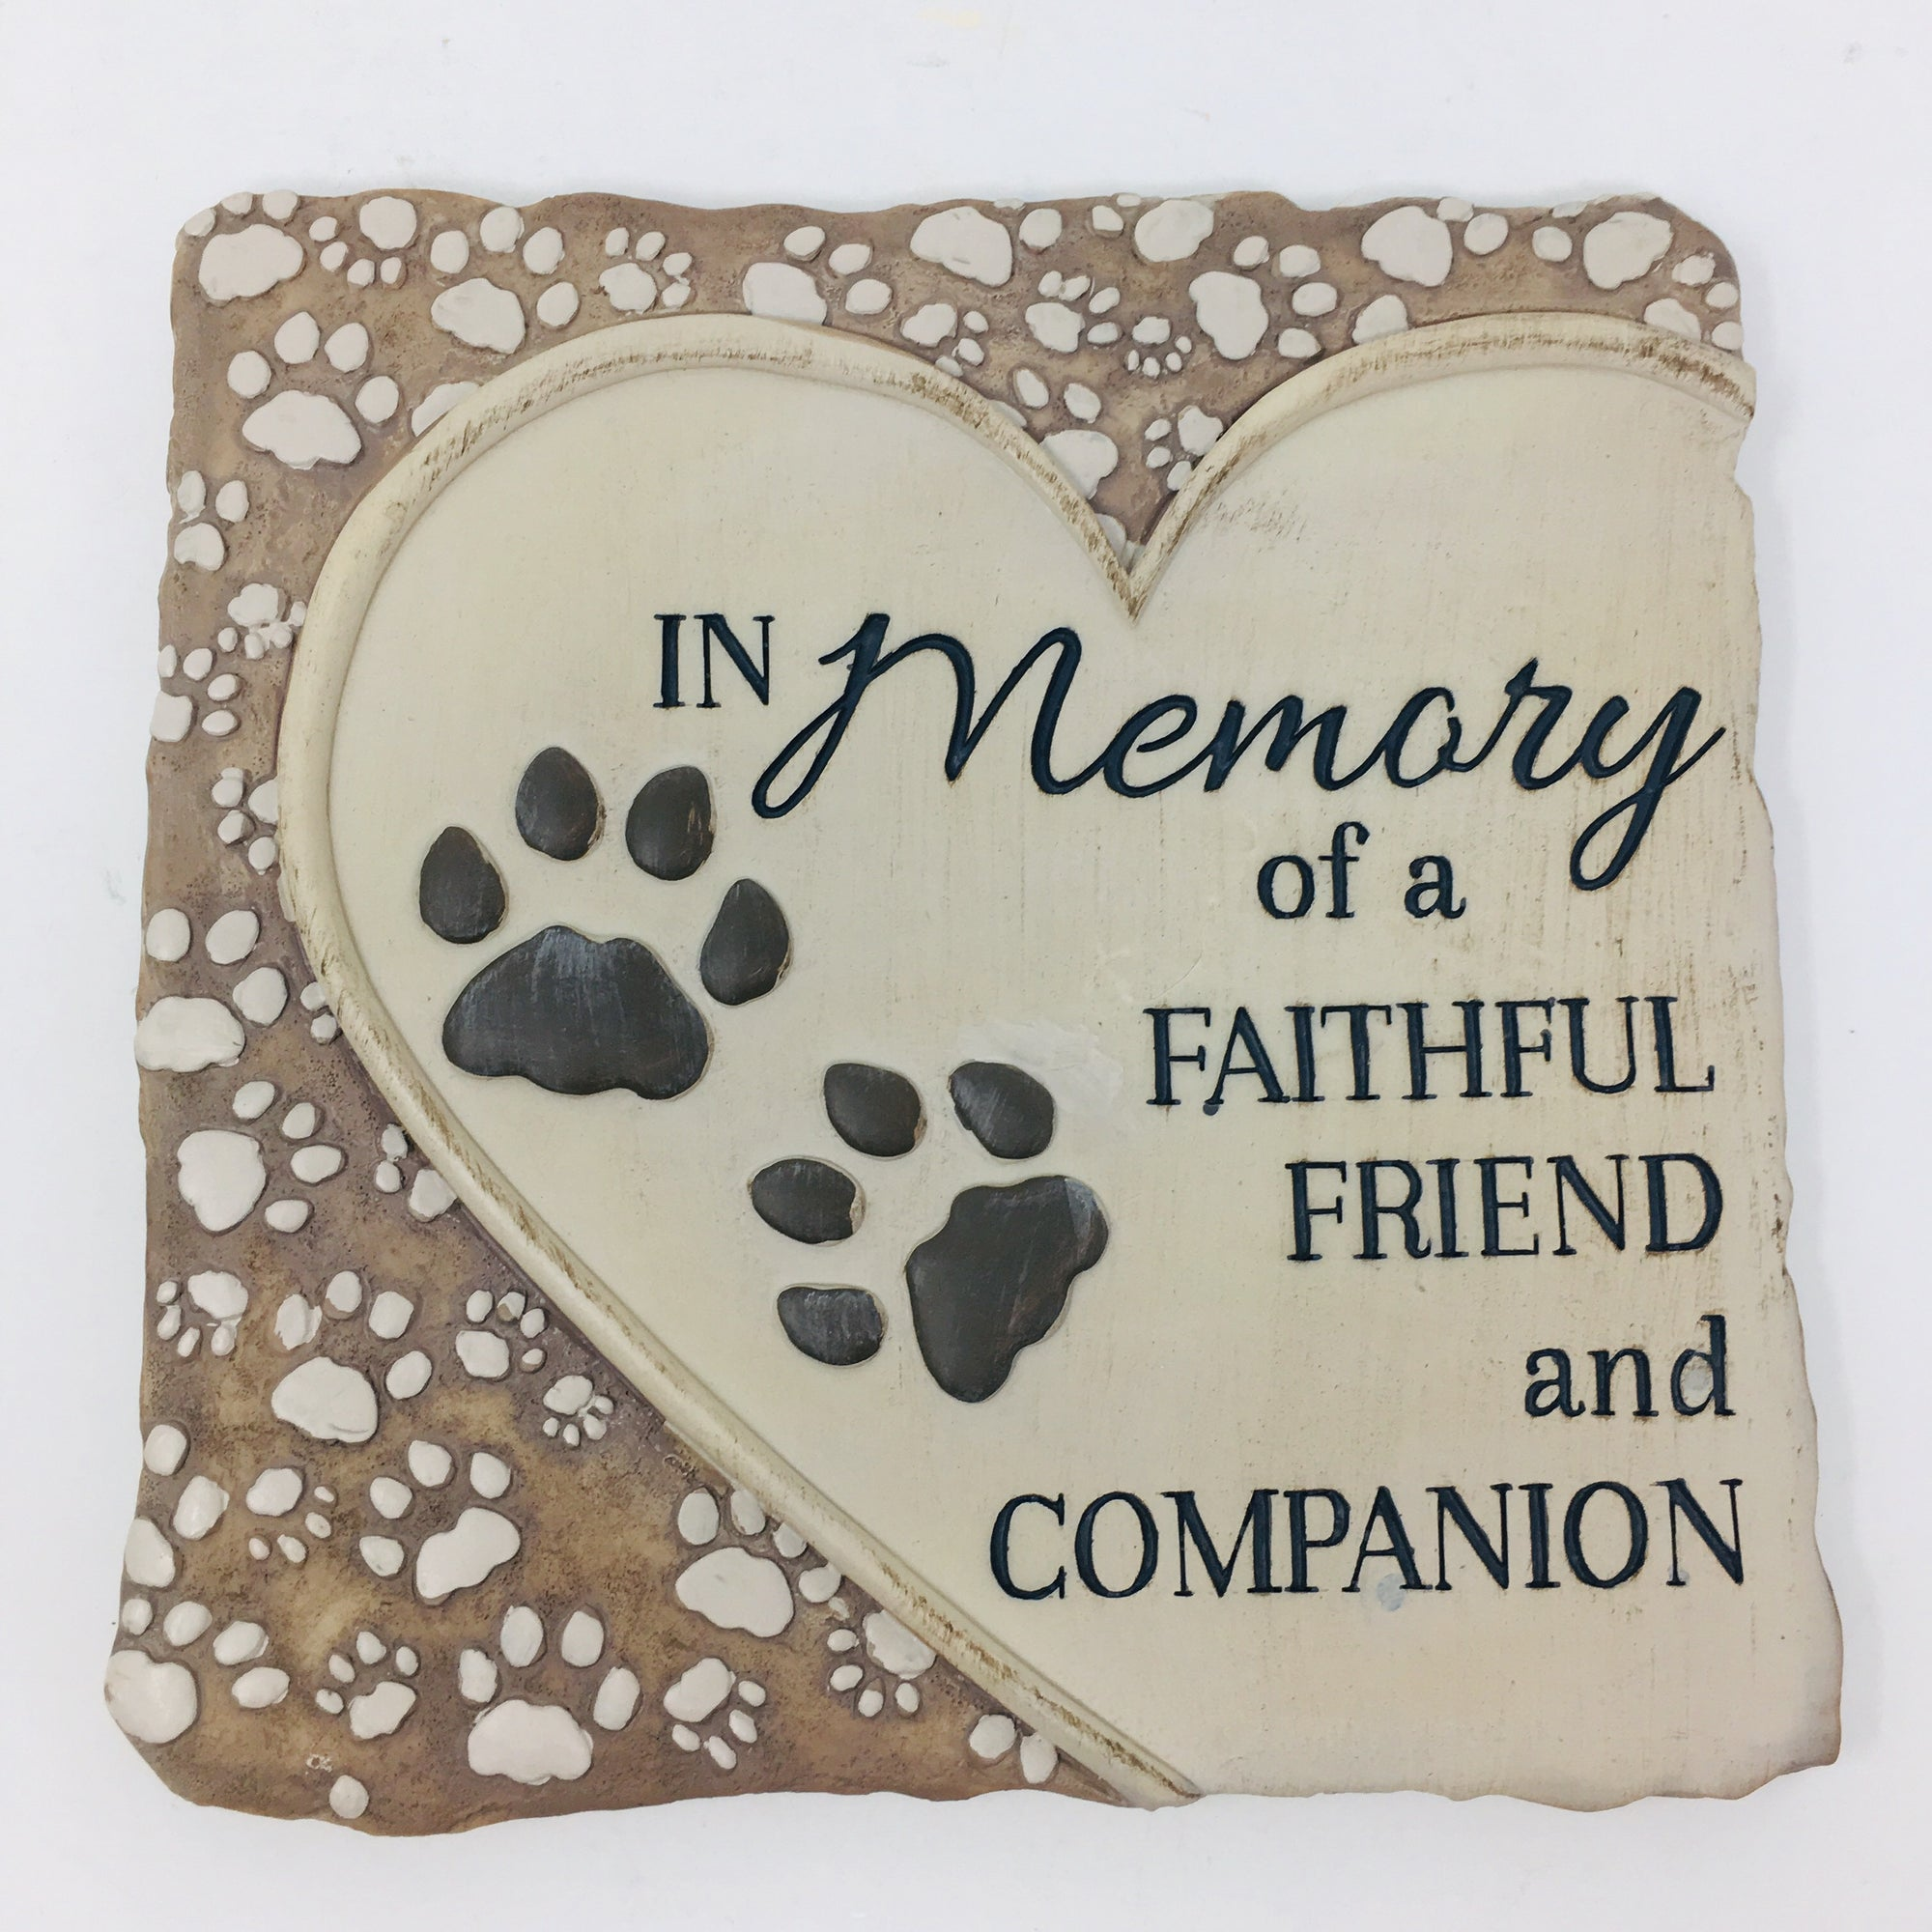 Faithful Friend and Companion Memorial Stone